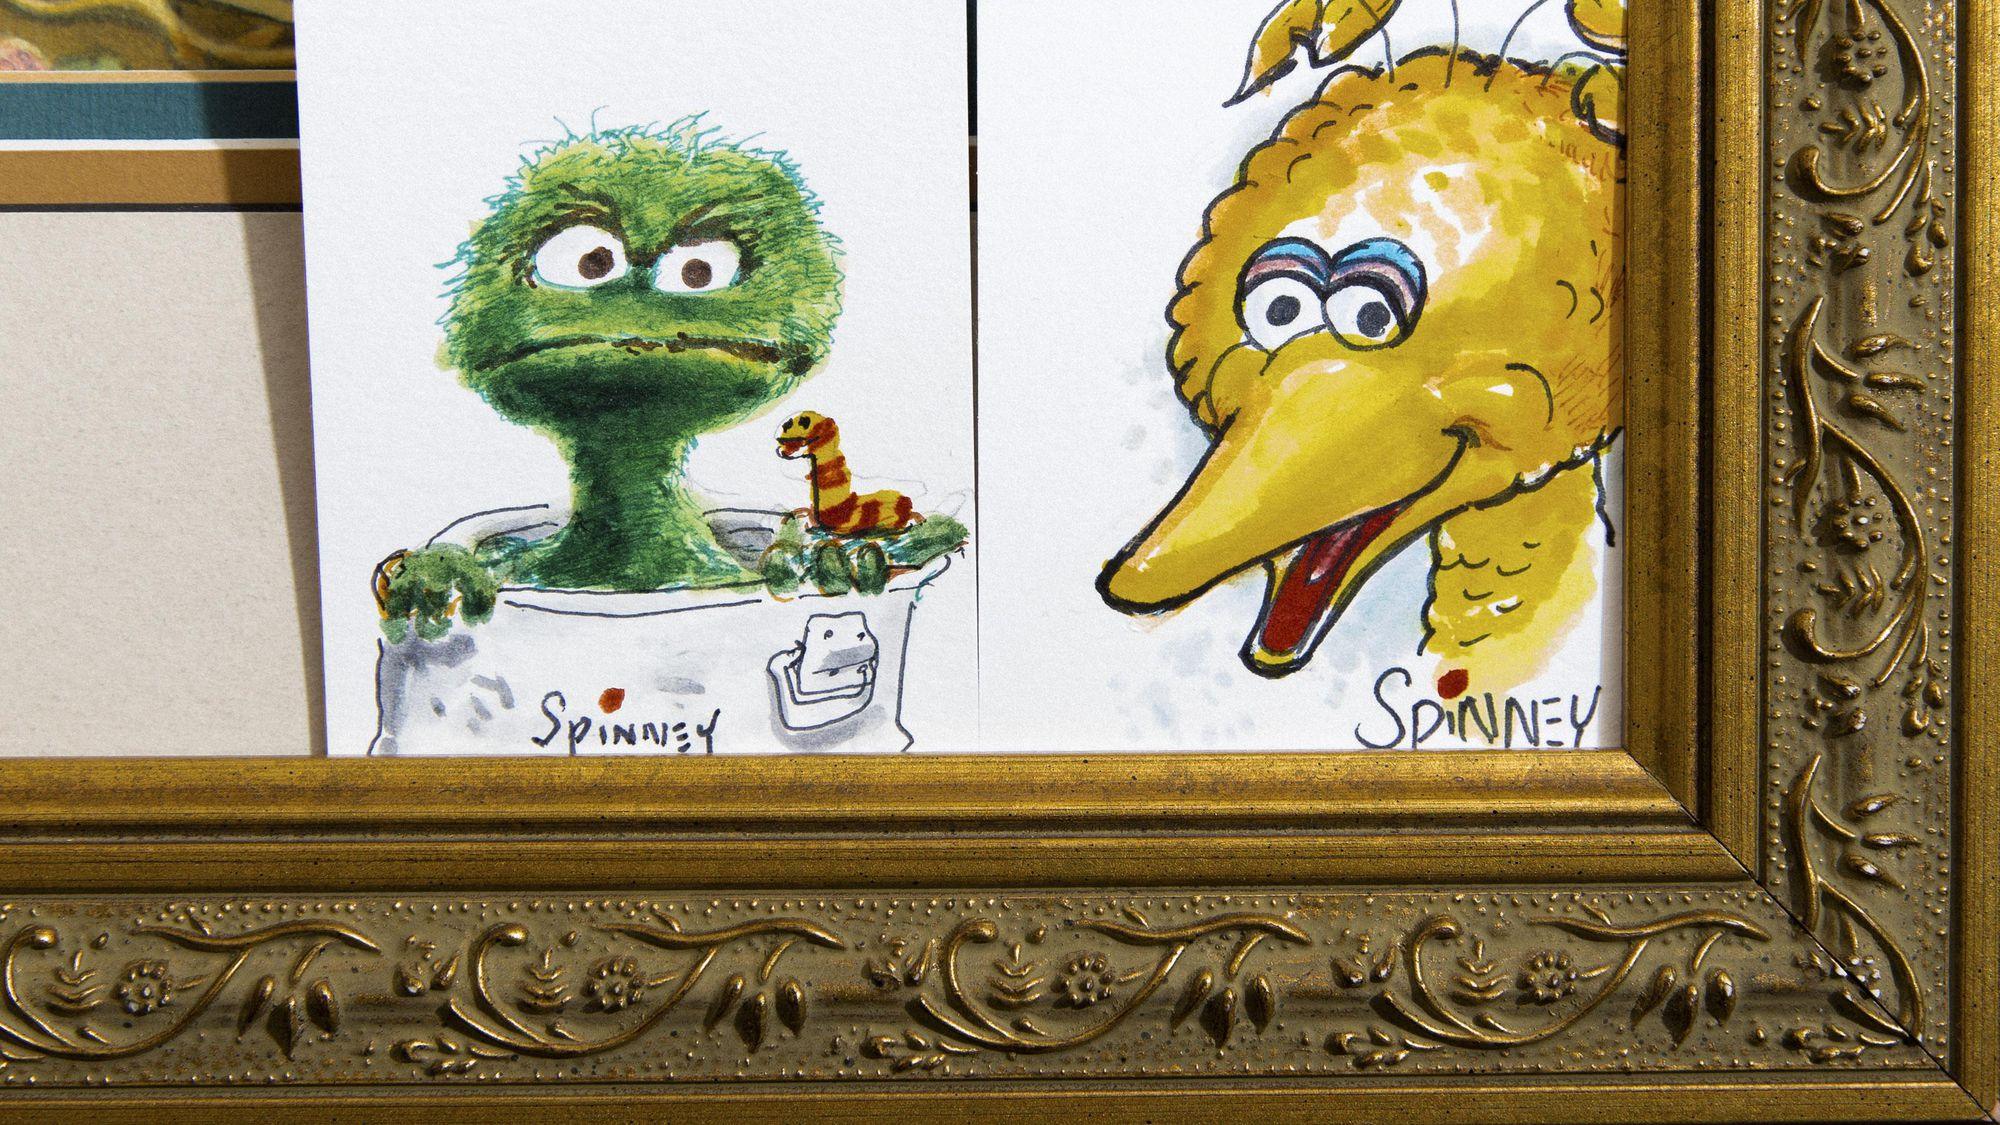 Original Big Bird Caroll Spinney Leaves Sesame Street